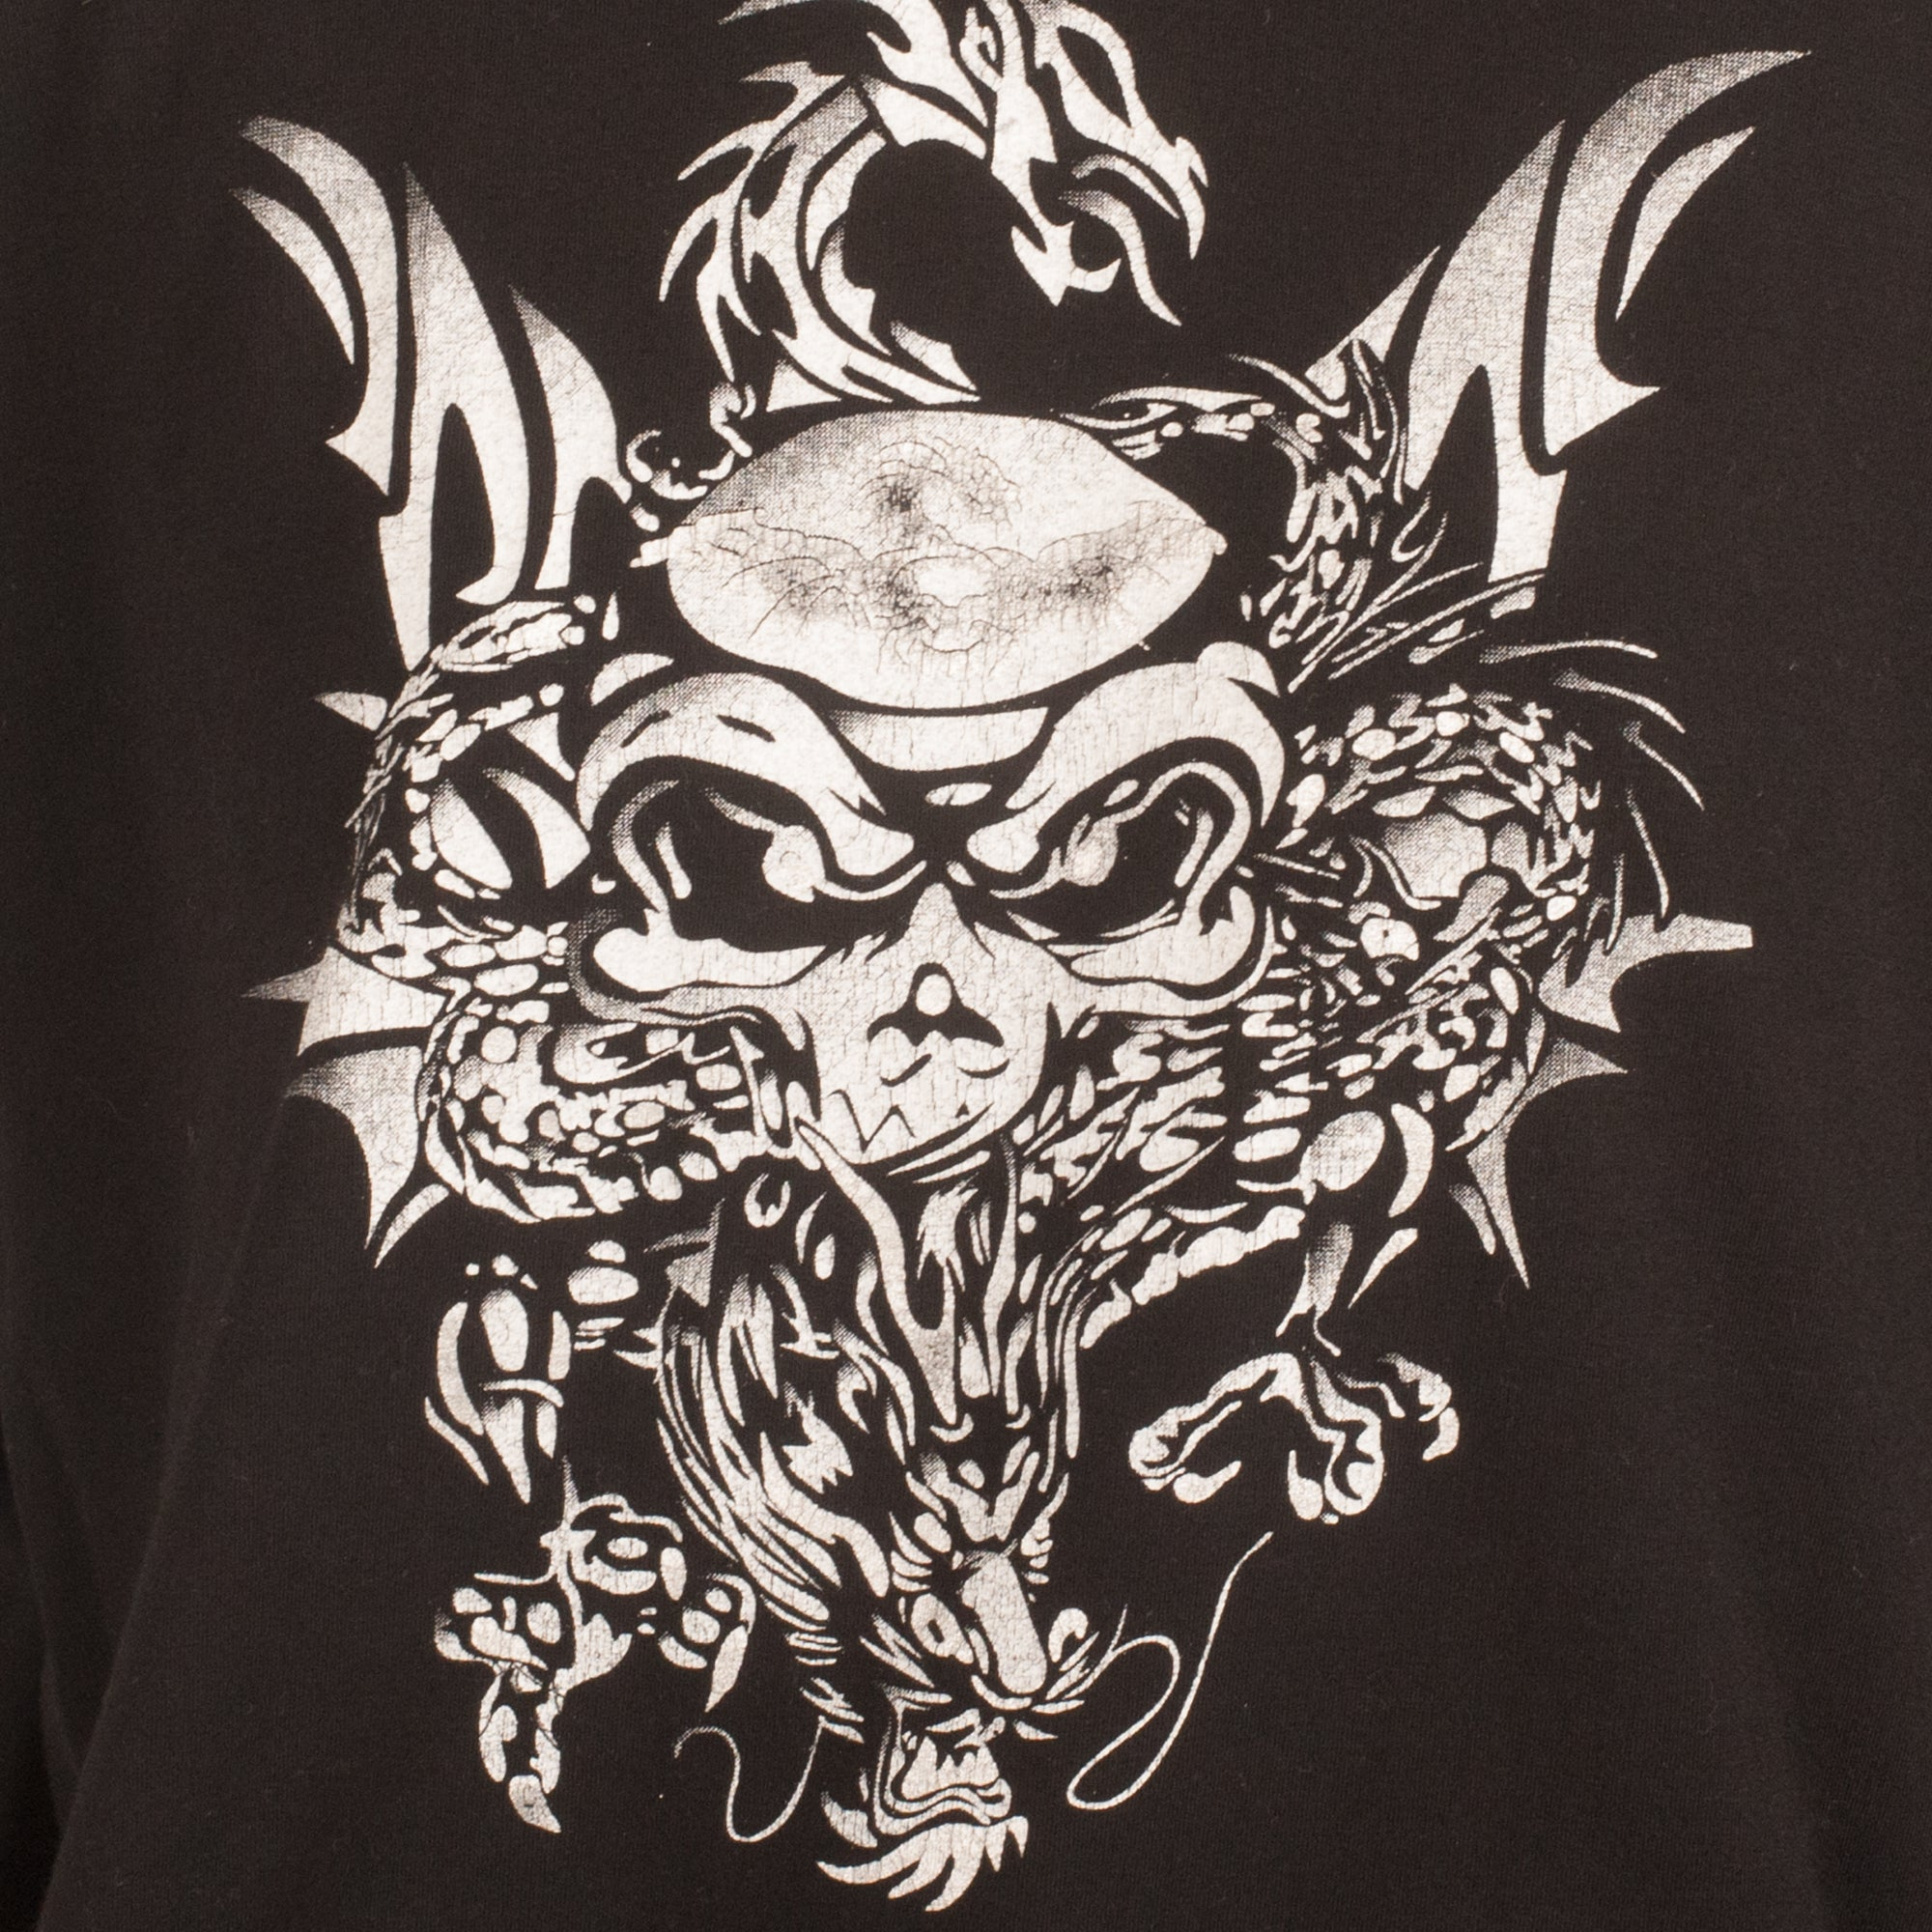 Richmond Skull and Dragon T-Shirt (Black) UK 8-12